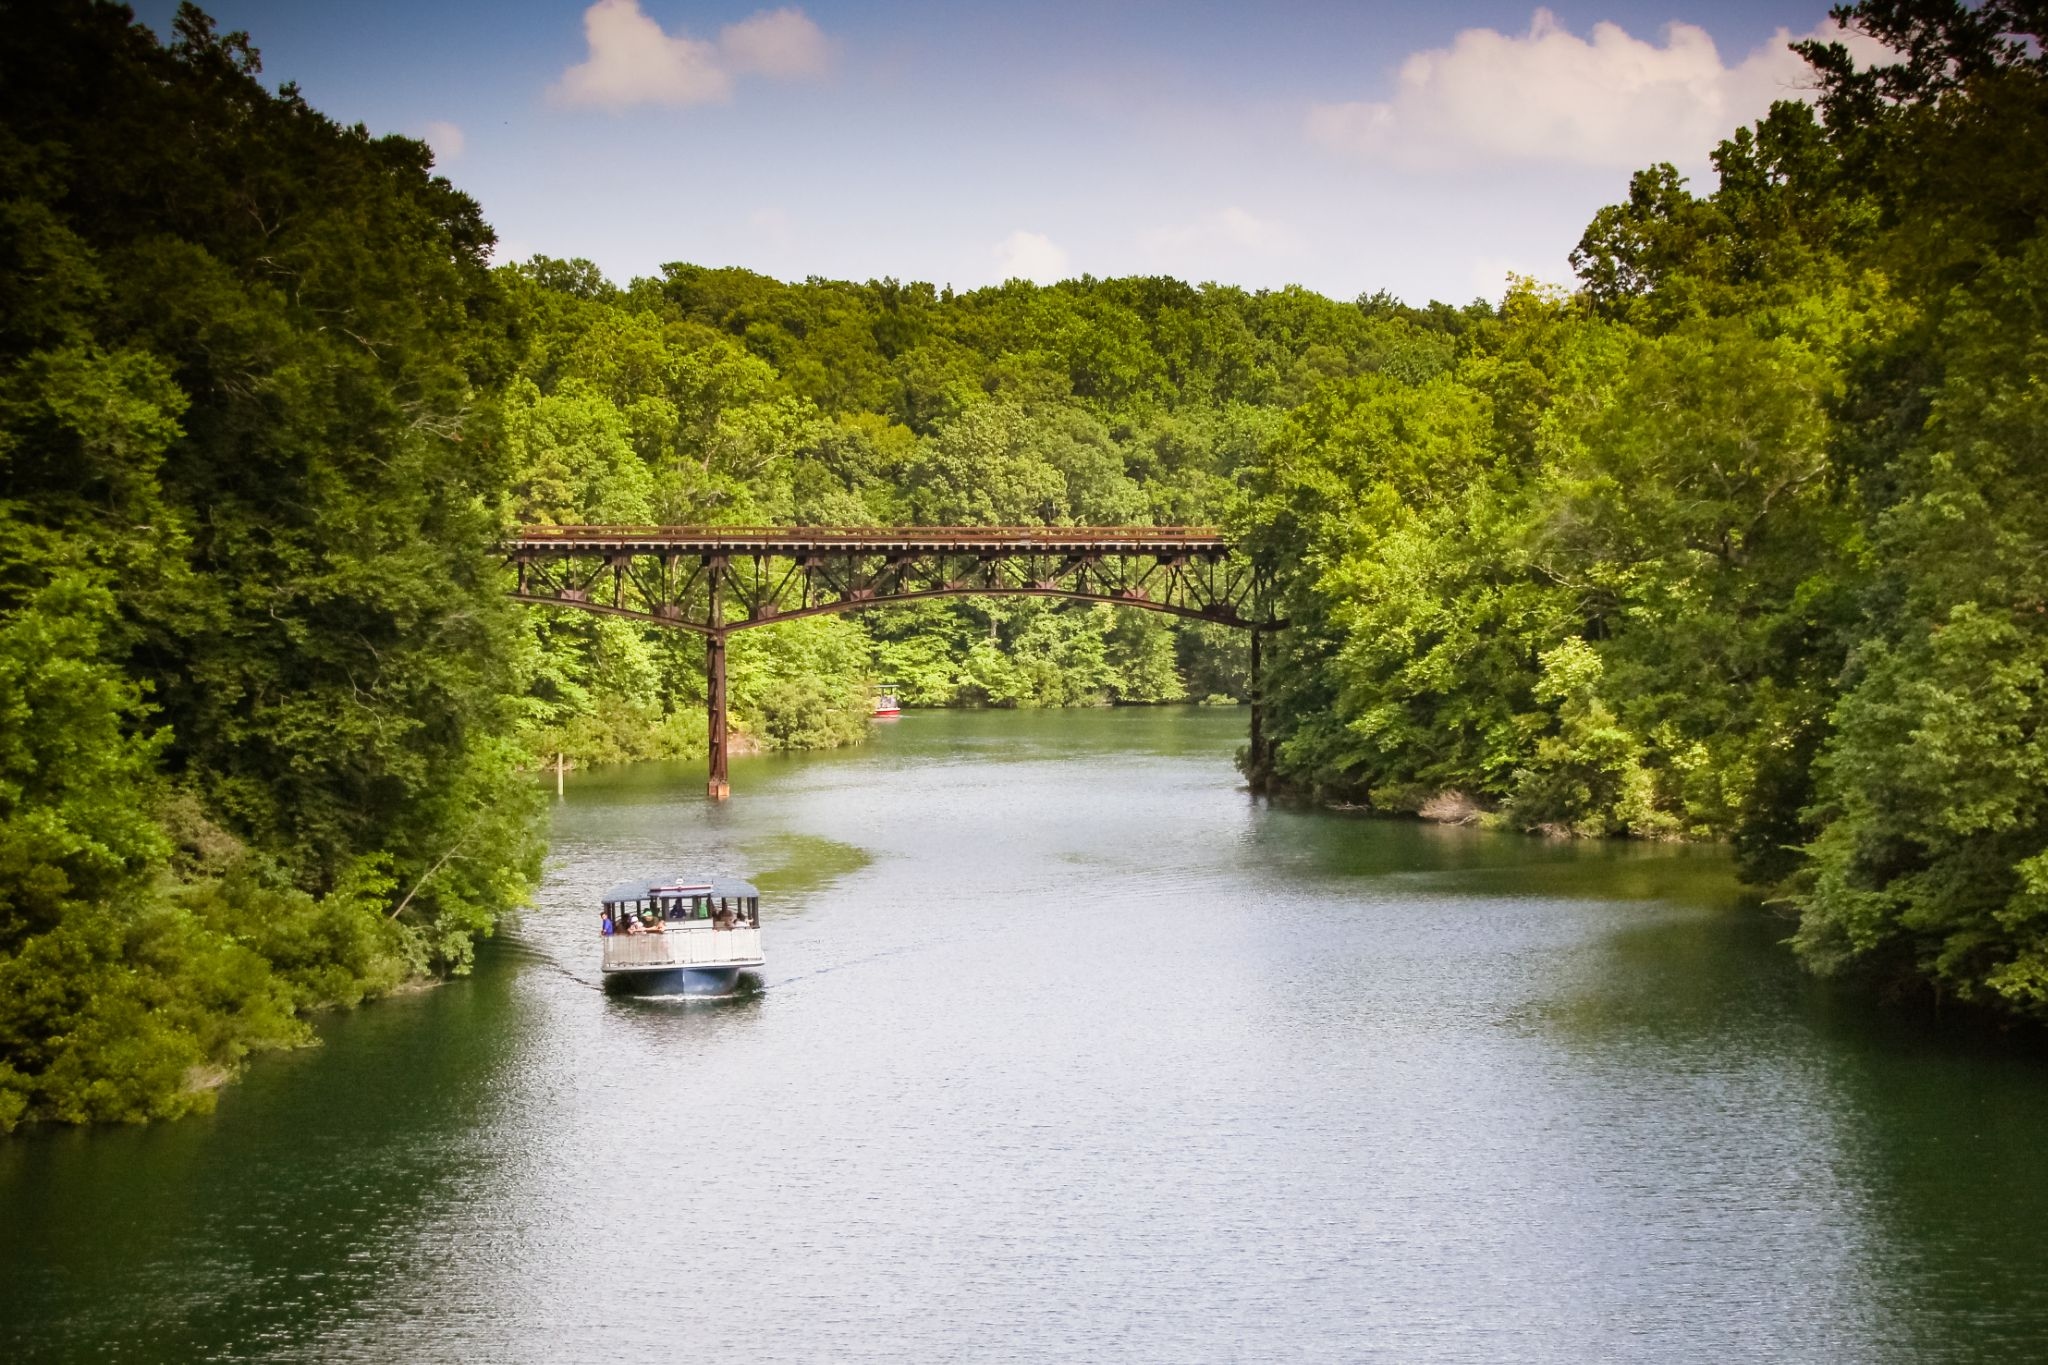 River Boat  by https://www.facebook.com/KeithLocksPhotography